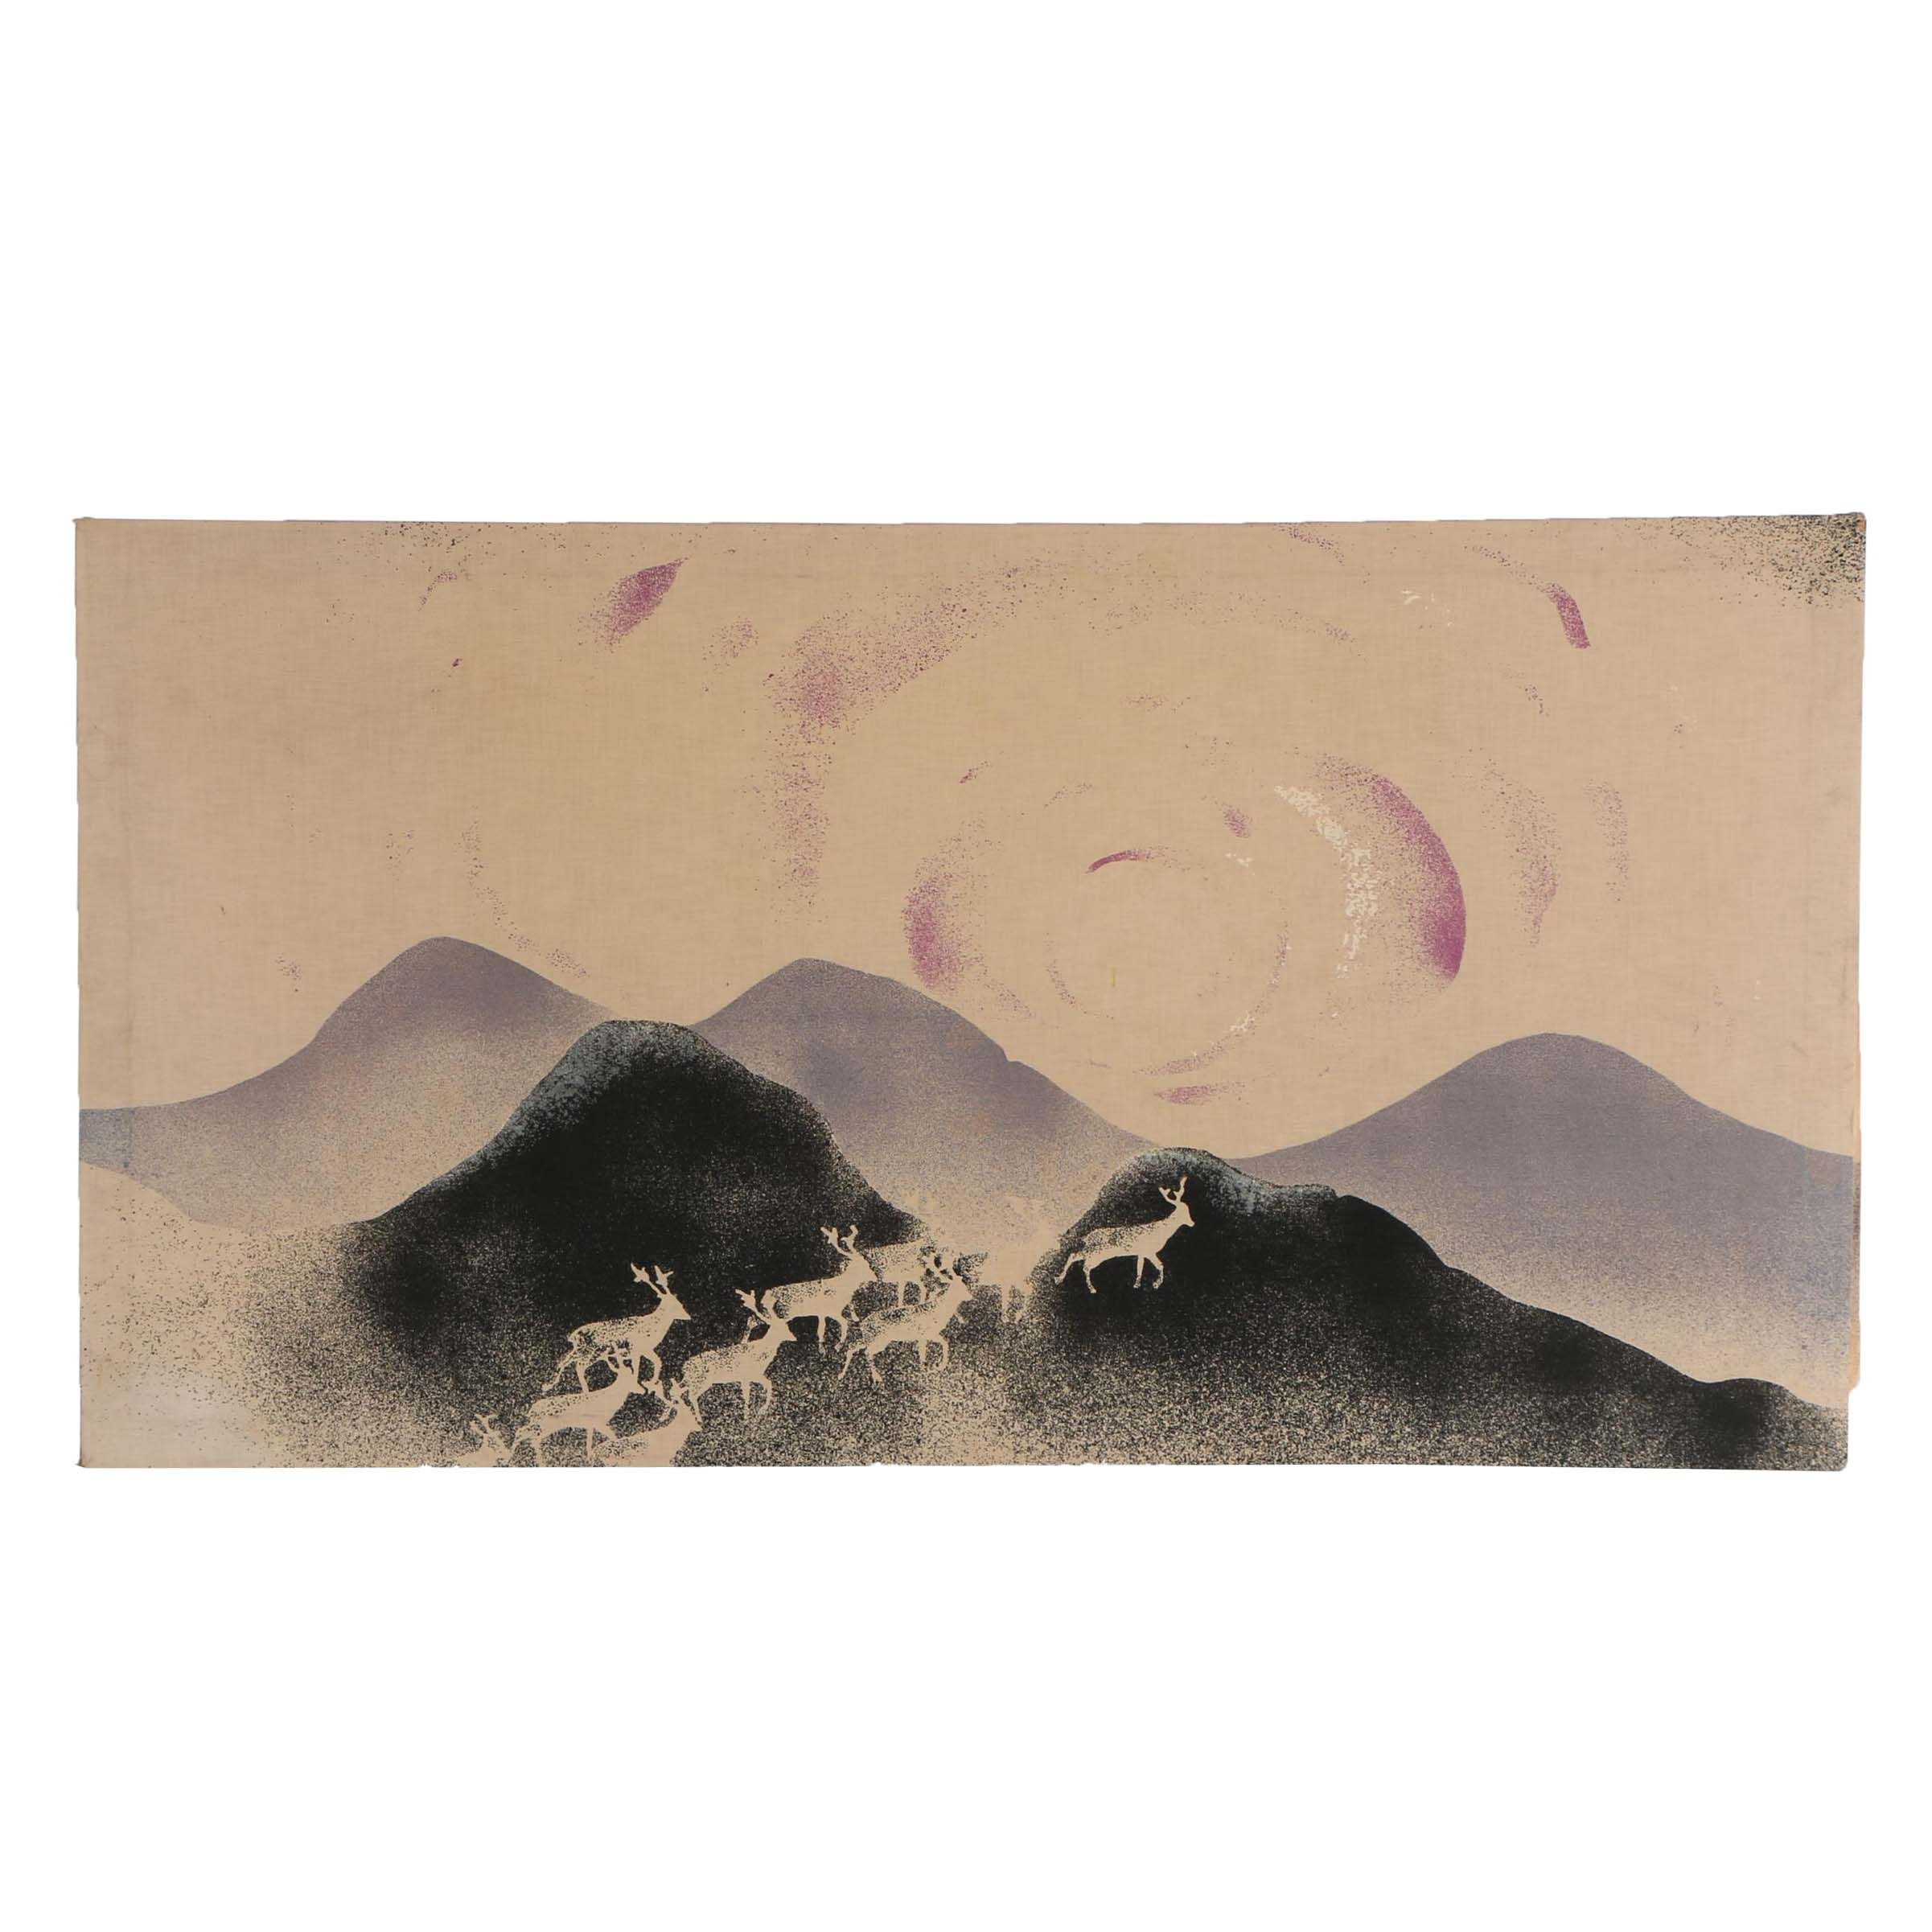 Late 20th Century Printed Landscape on Fabric